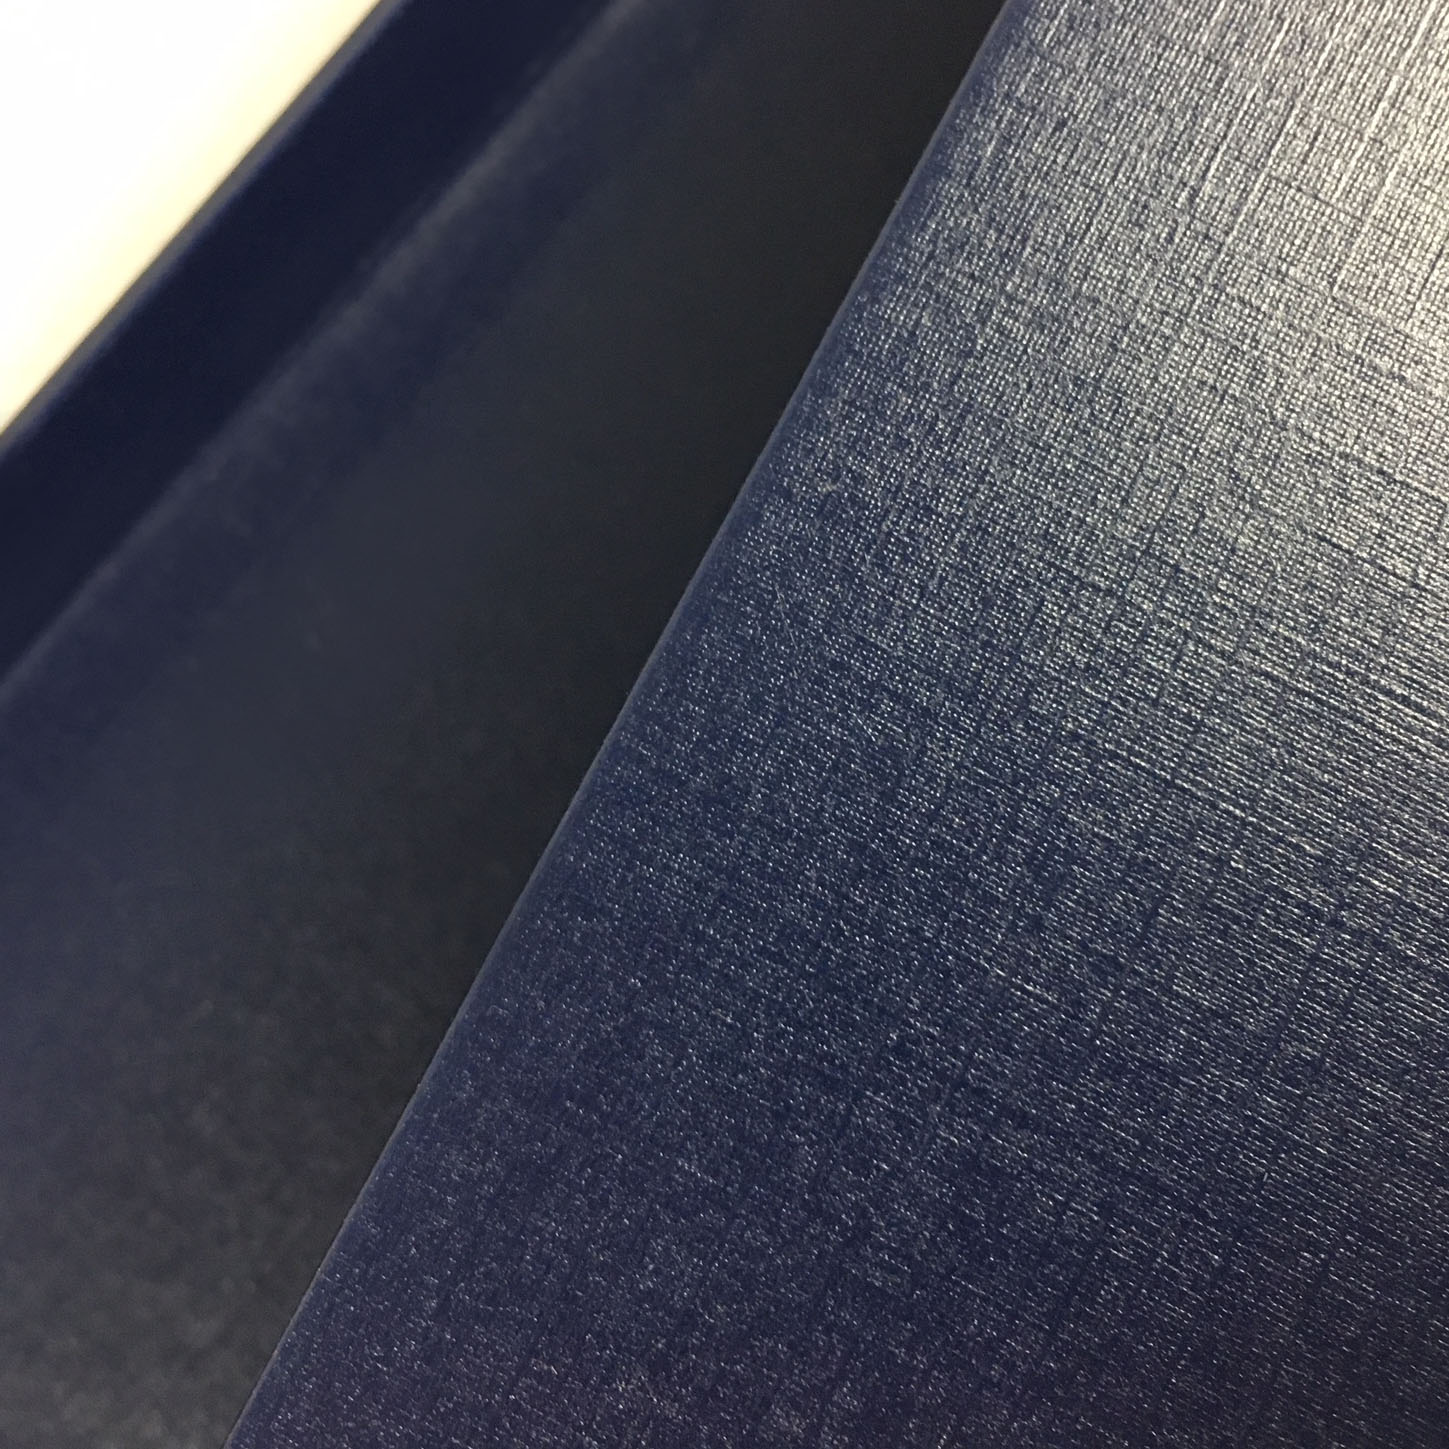 detail picture of navy blue paper box